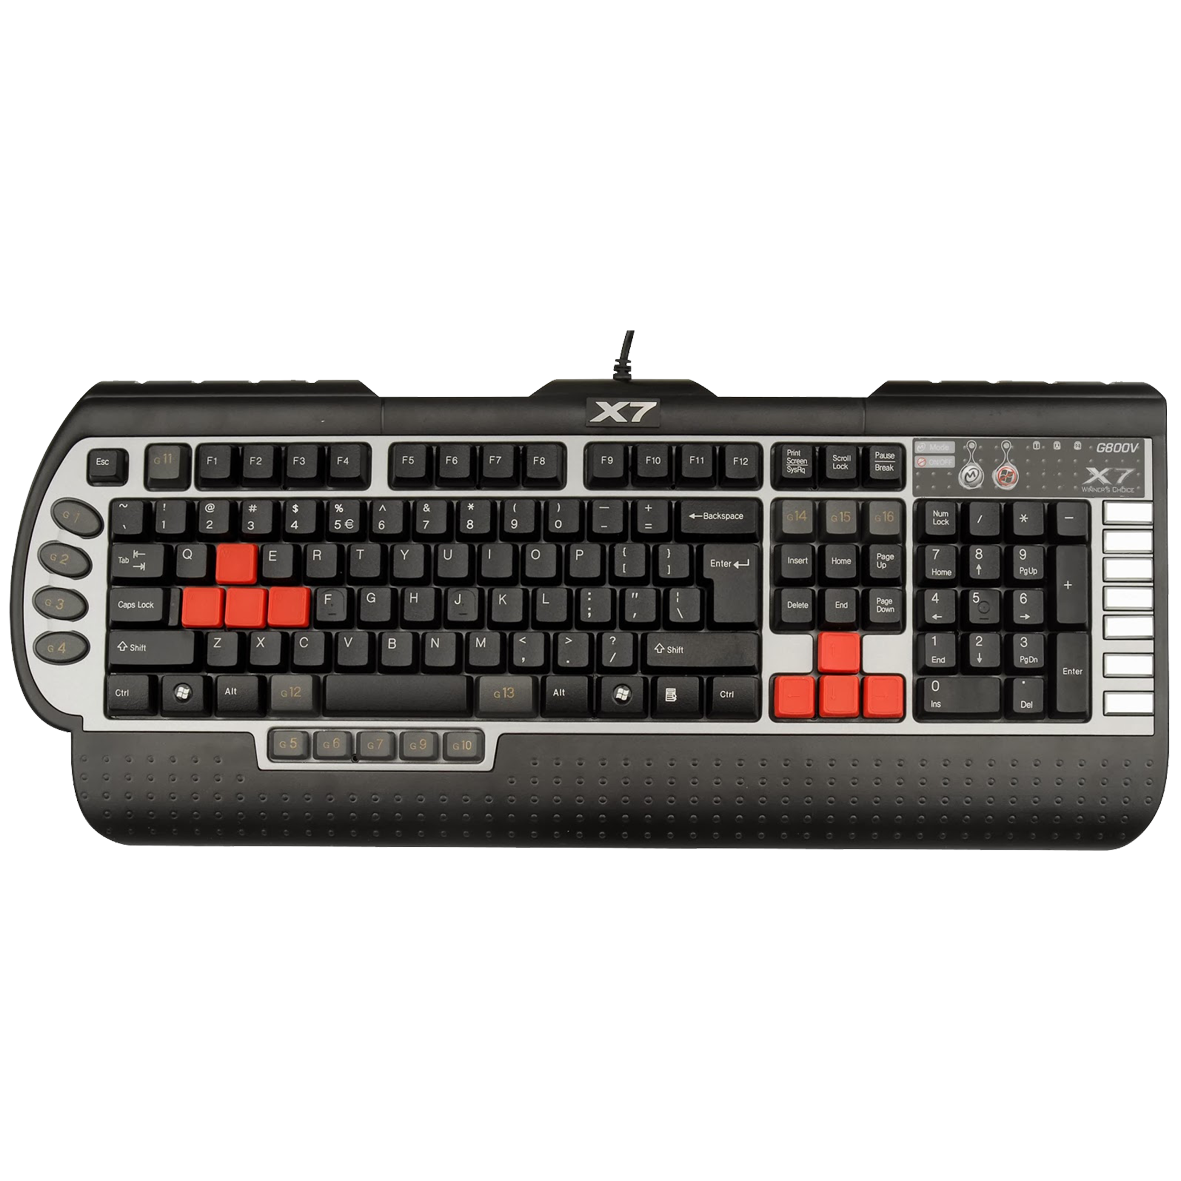 Teclado USB Multimidia Gamer X7G800V - A4Tech